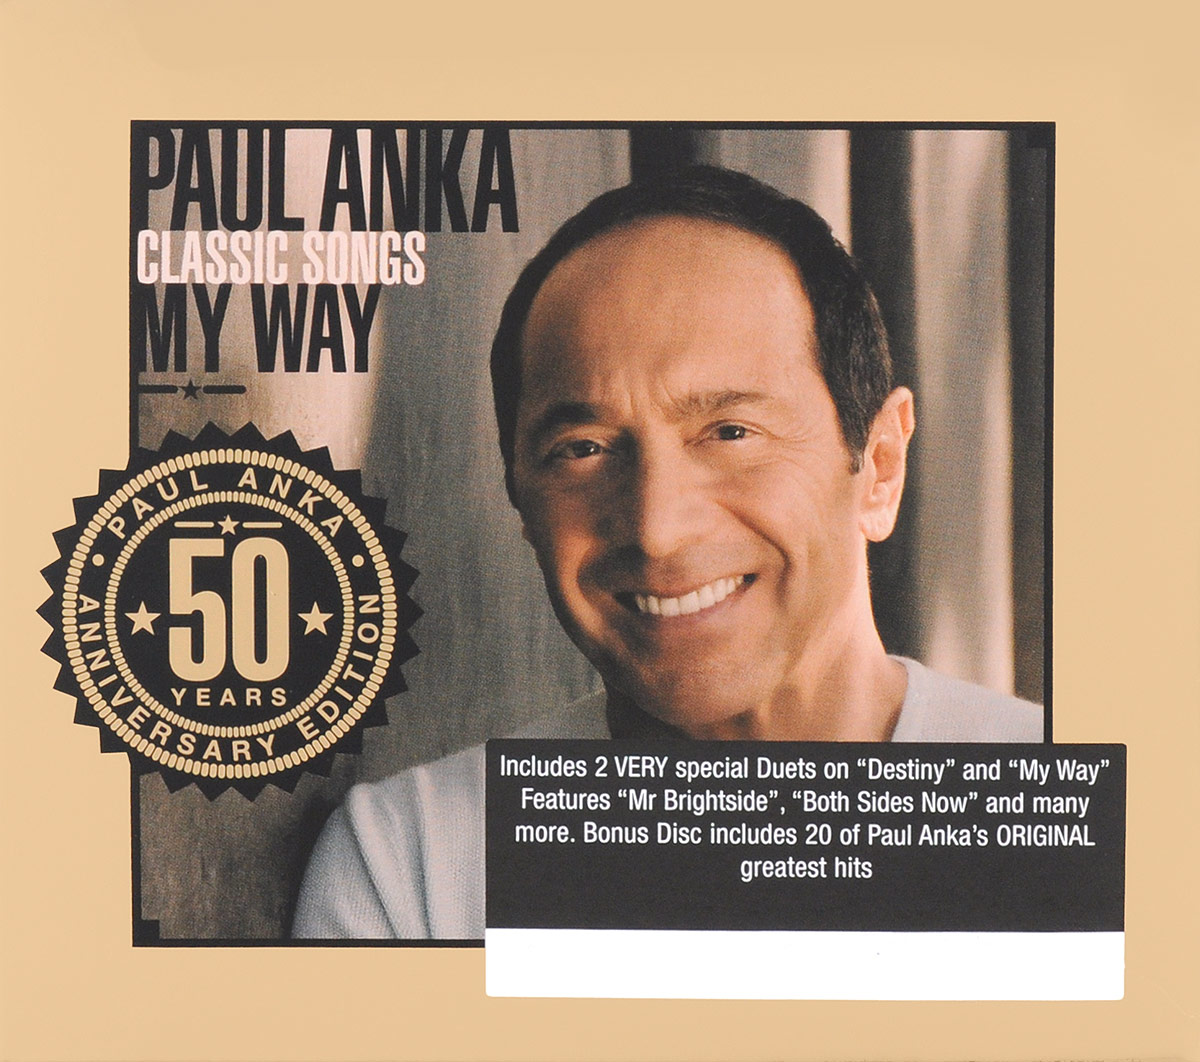 Пол Анка,Майкл Бубле,Джон Бон Джови,Сэмми Дэвис младший Paul Anka. Classic Songs. My Way. 50th Anniversary Edition (2 CD) cd scorpions taken by force 50th anniversary deluxe edition